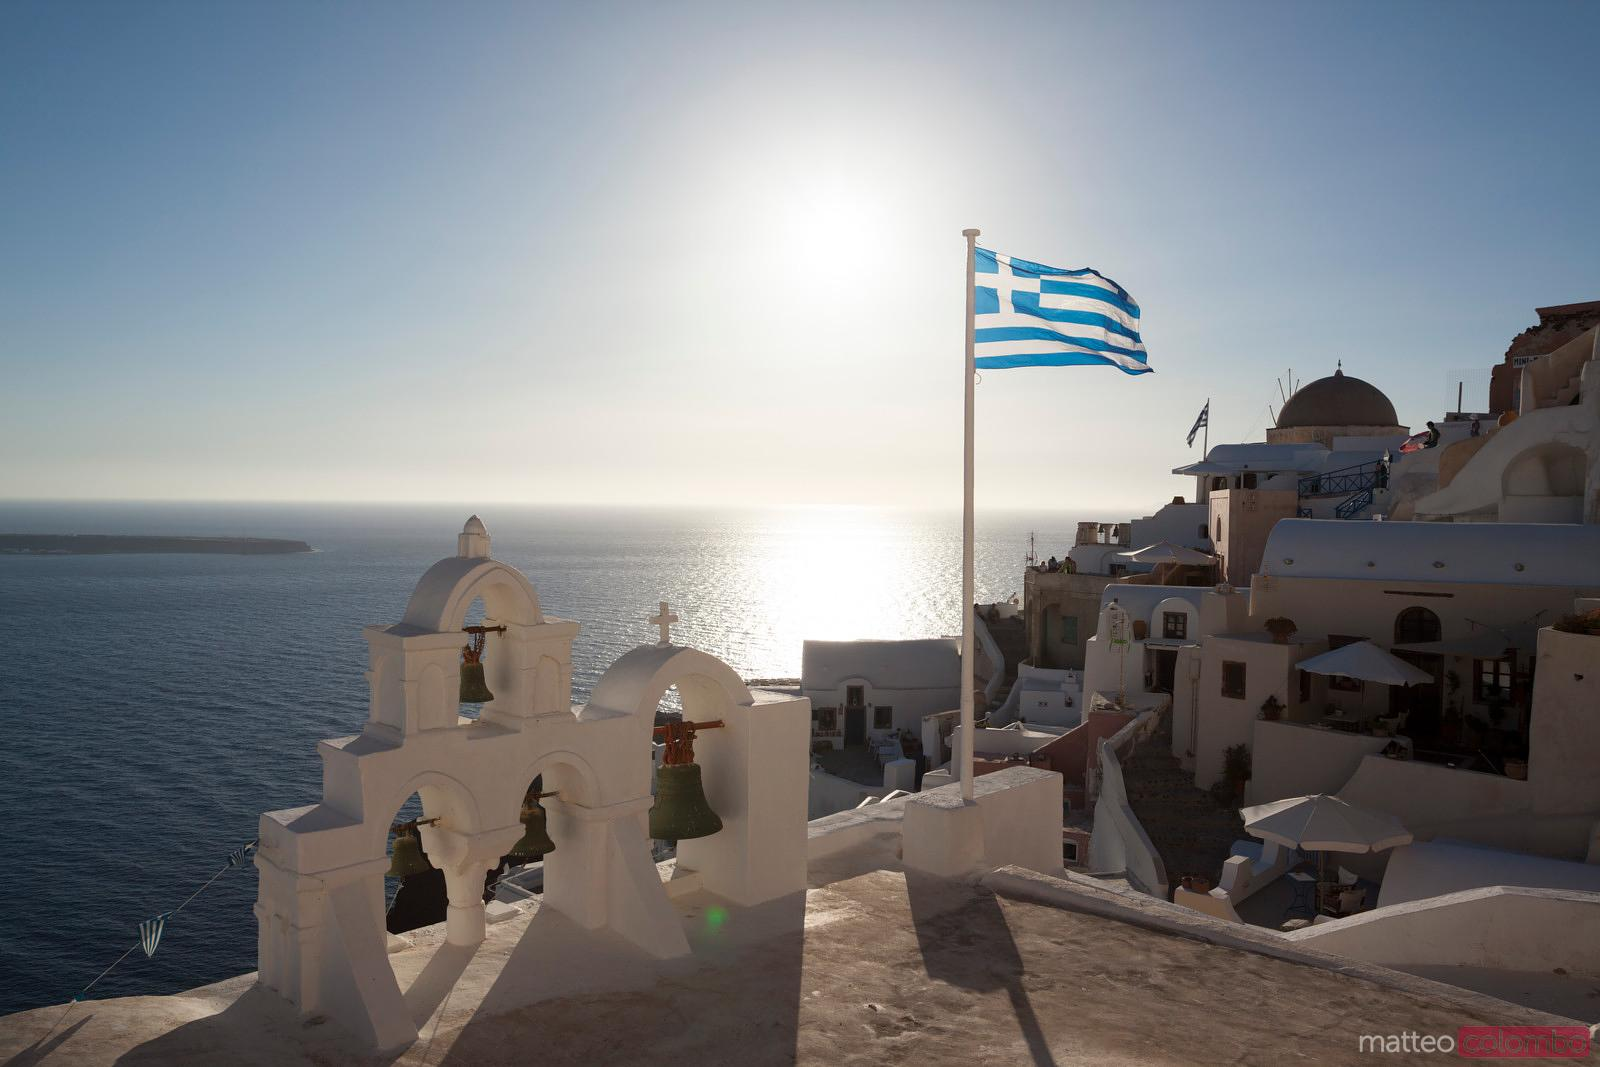 Greece flag waving at sunset